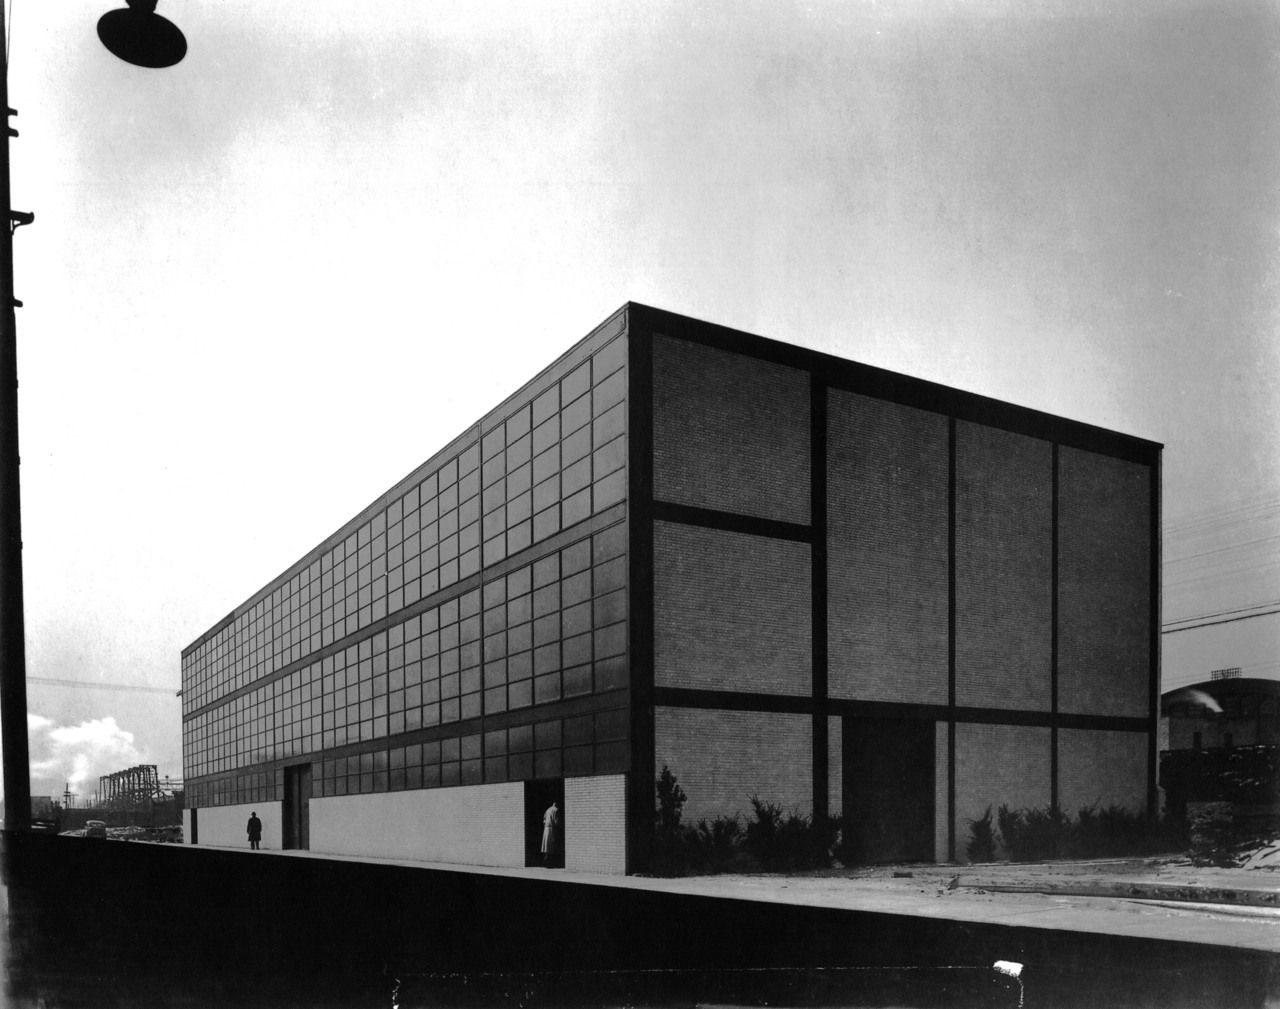 minerals and metals research building illinois institute of technology 1943 ludwig mies van. Black Bedroom Furniture Sets. Home Design Ideas